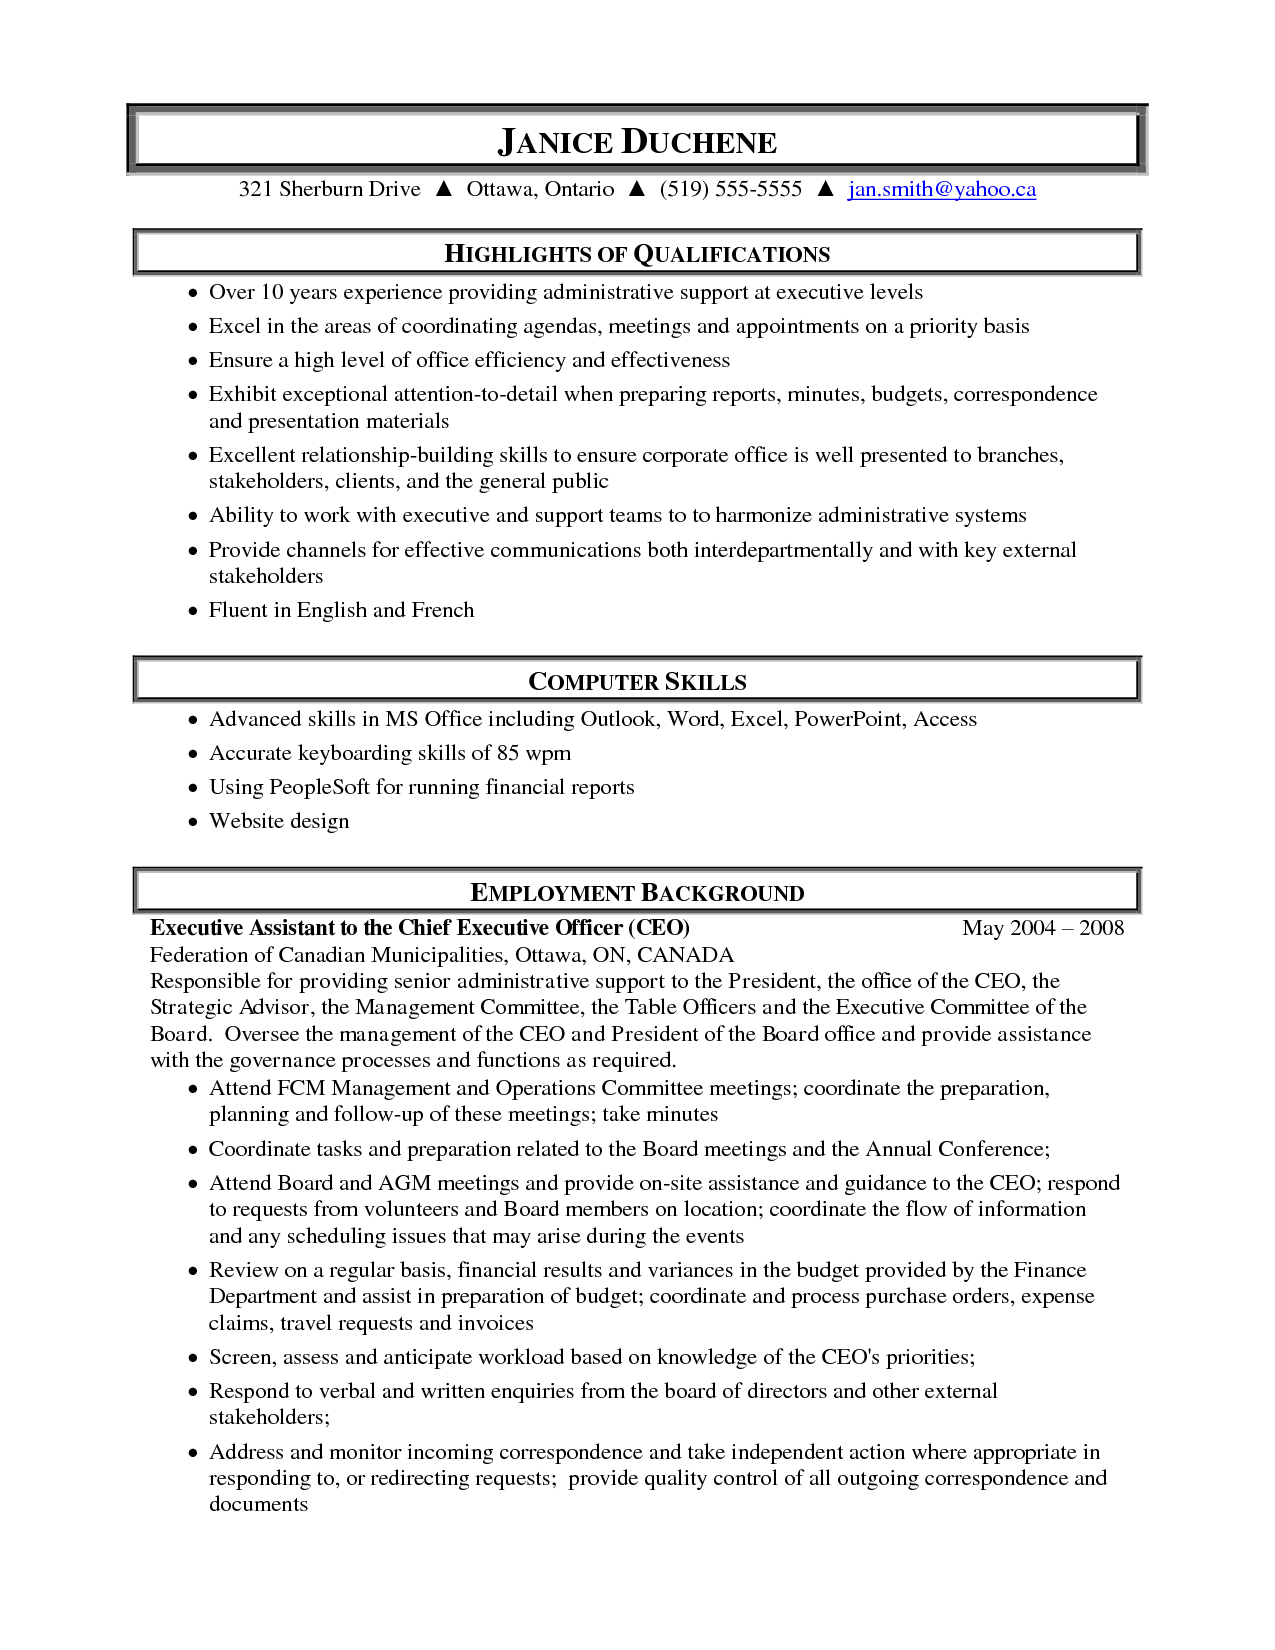 medical administrative assistant resume samples highlight of qualifications - Office Assistant Resume Sample